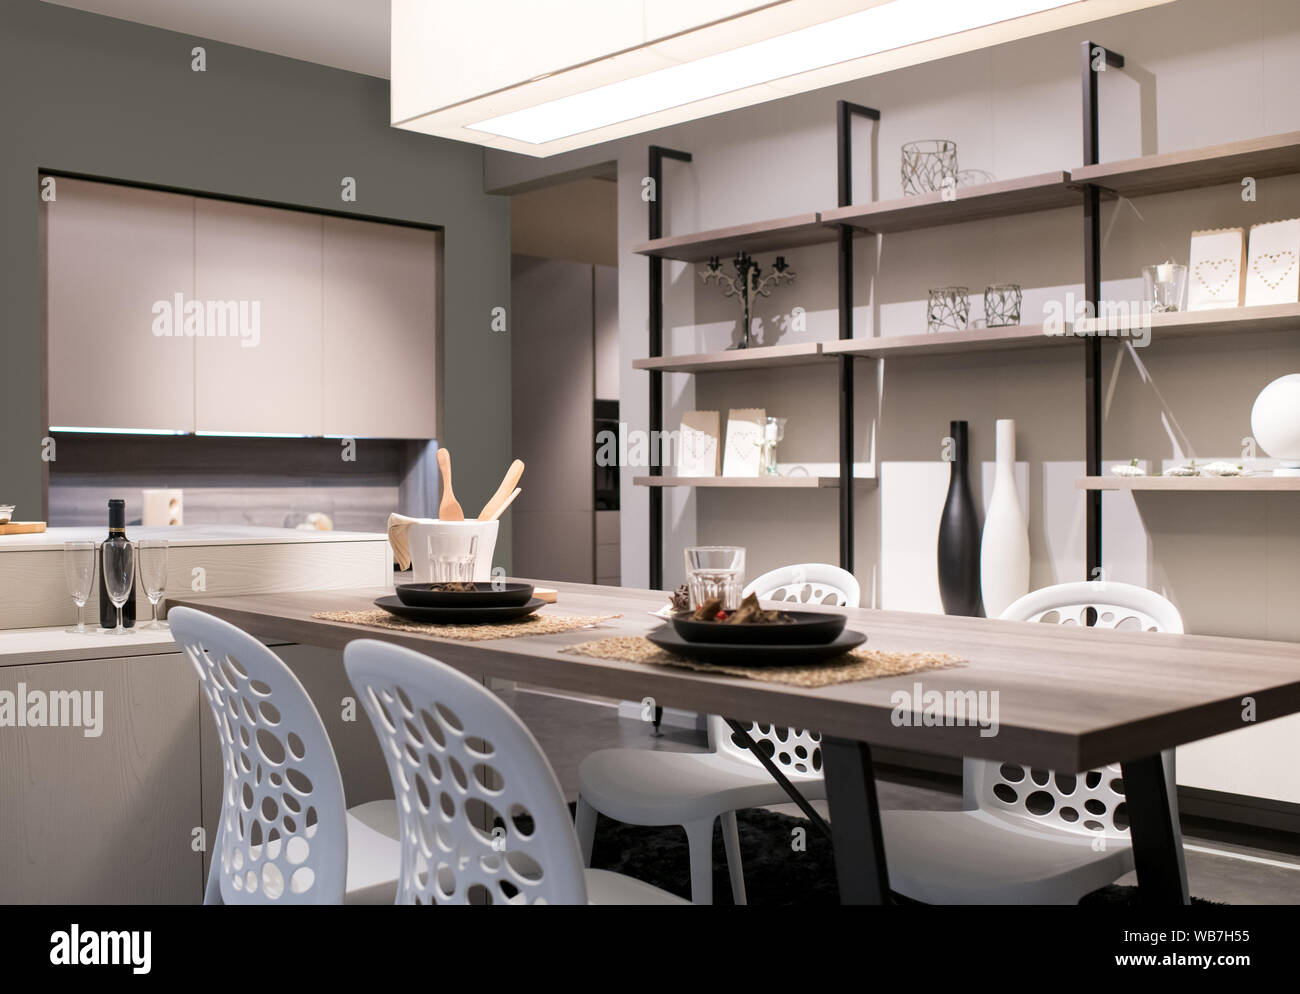 Open plan kitchen and dining room with neutral beige decor, shelving wall unit and a modern table and chairs lit by a large overhead ceiling light Stock Photo